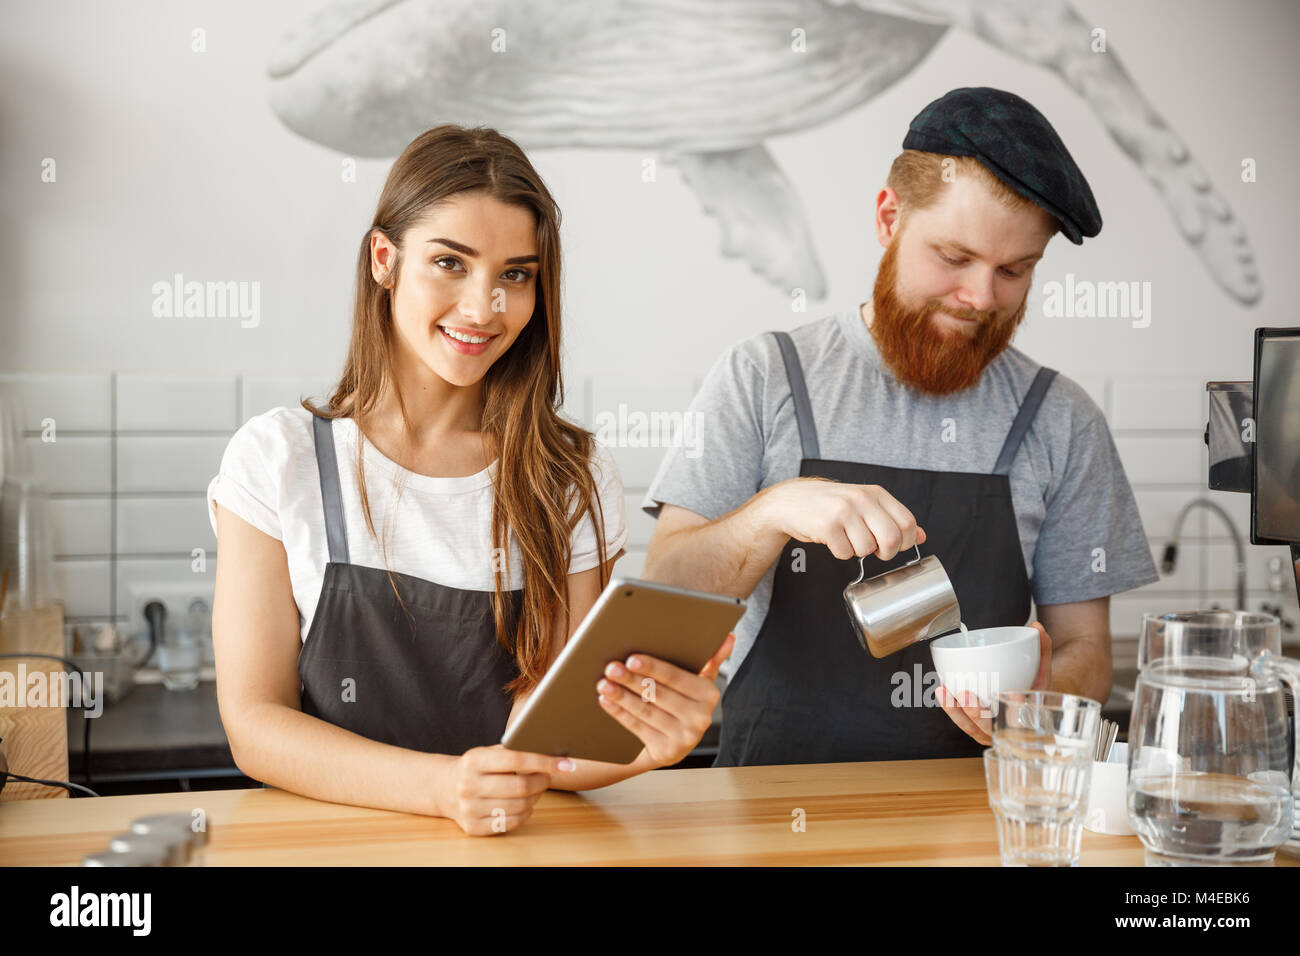 Coffee Business Concept - happy young couple business owners of small coffee shop working and planing on tablet. - Stock Image